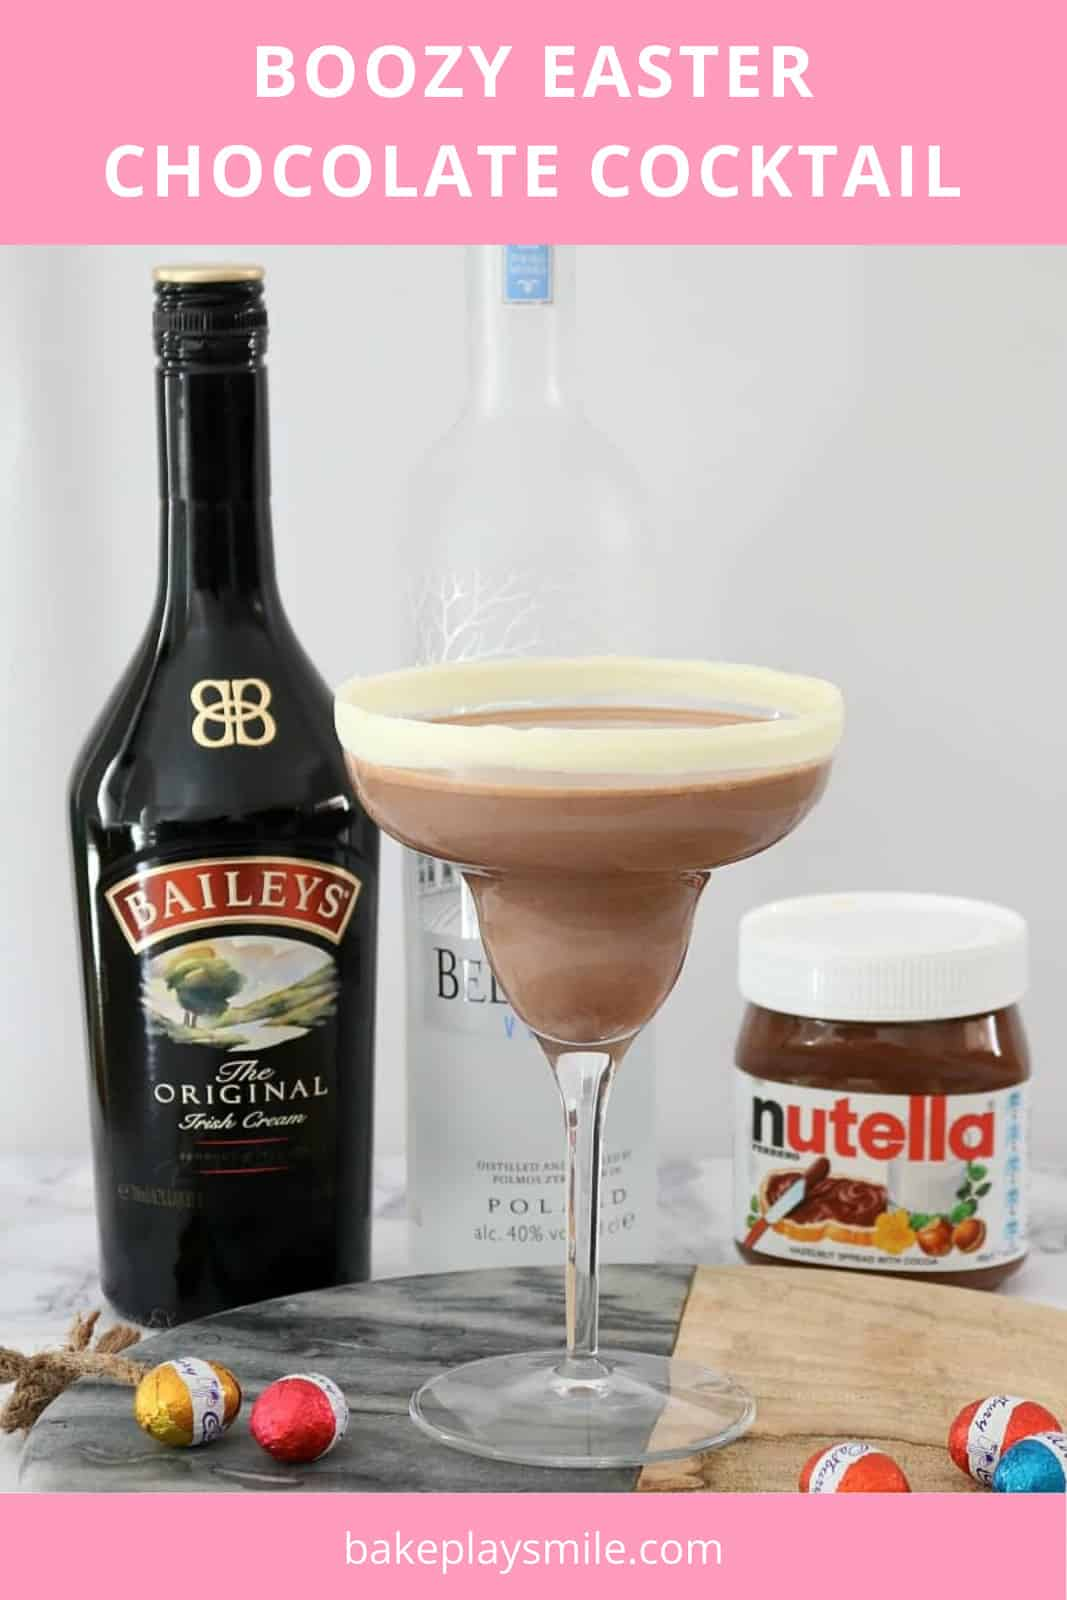 A chocolate cocktail in a glass with nutella, baileys, vodka and easter eggs around it.